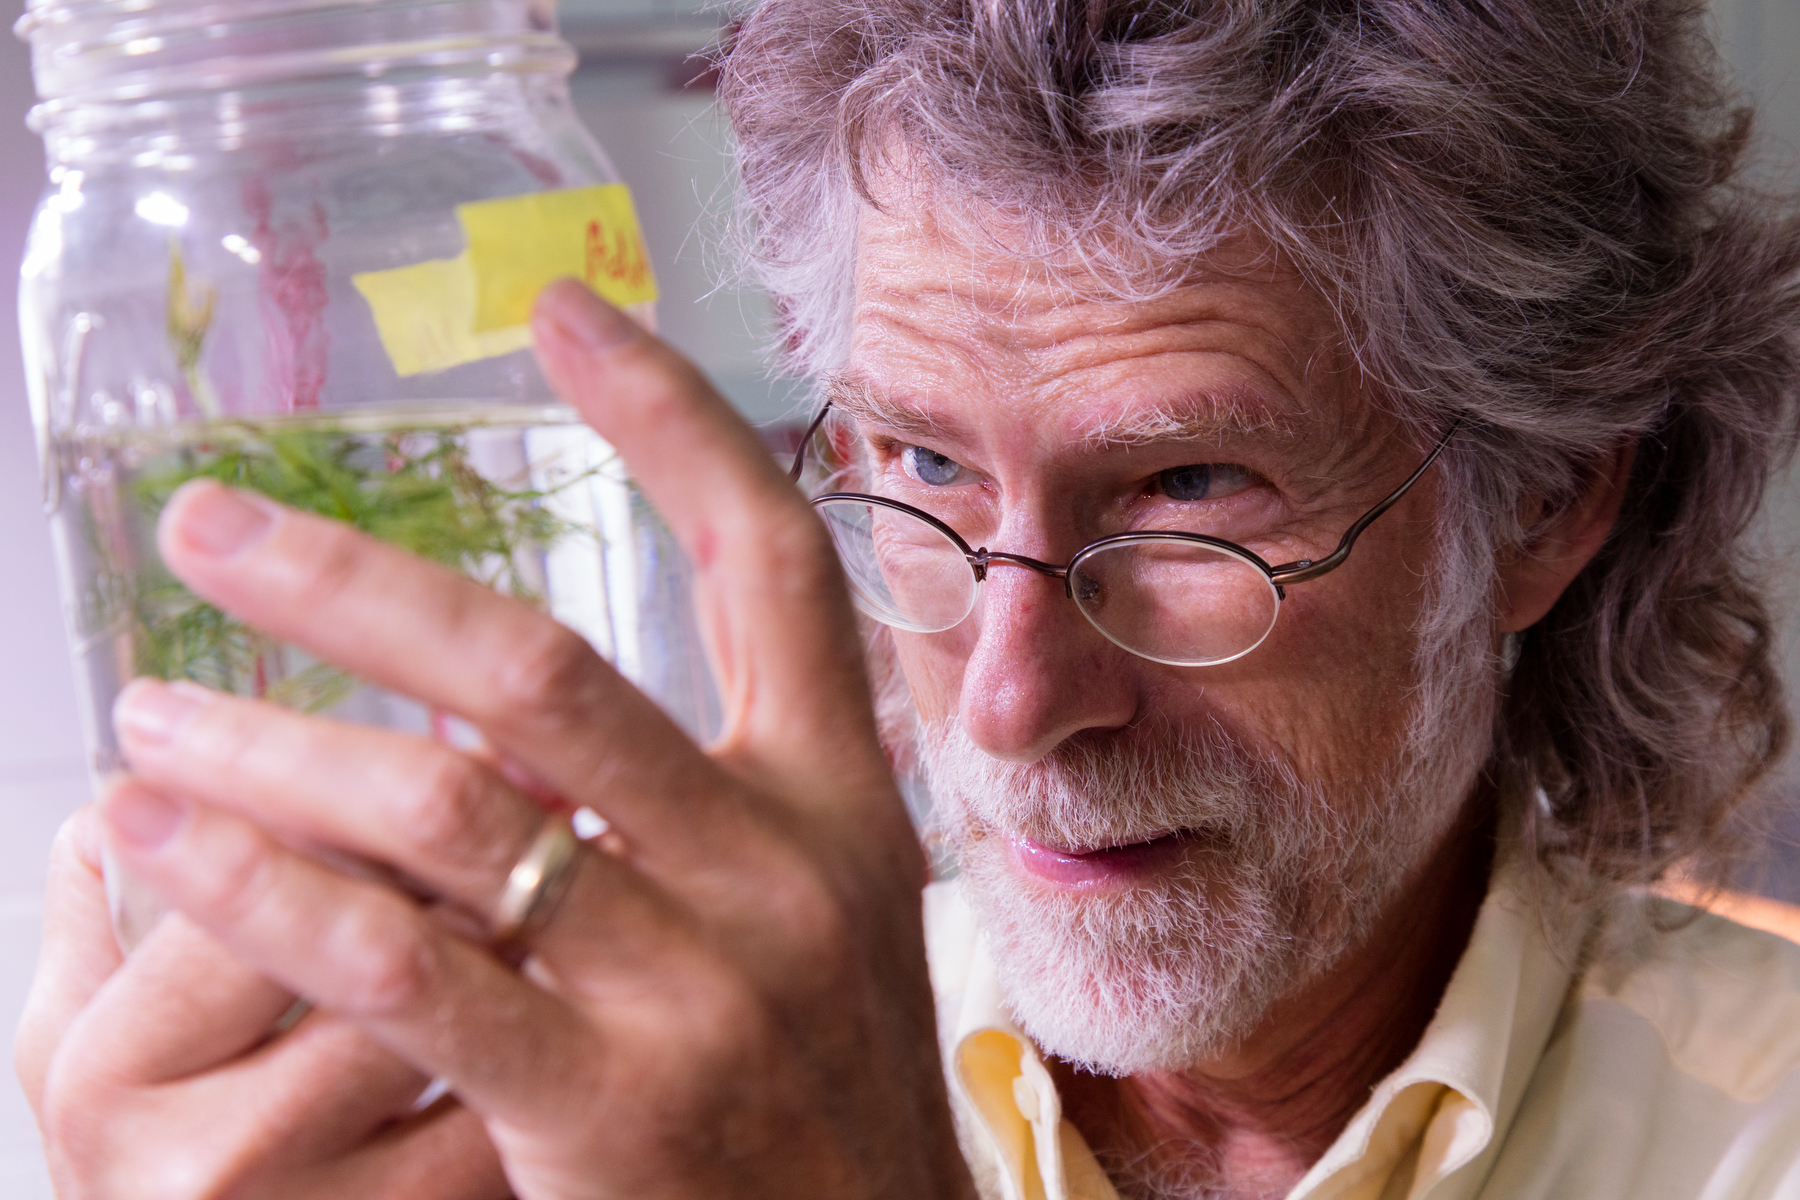 MAISRC researcher Ray Newman holds a jar of invasive plants.